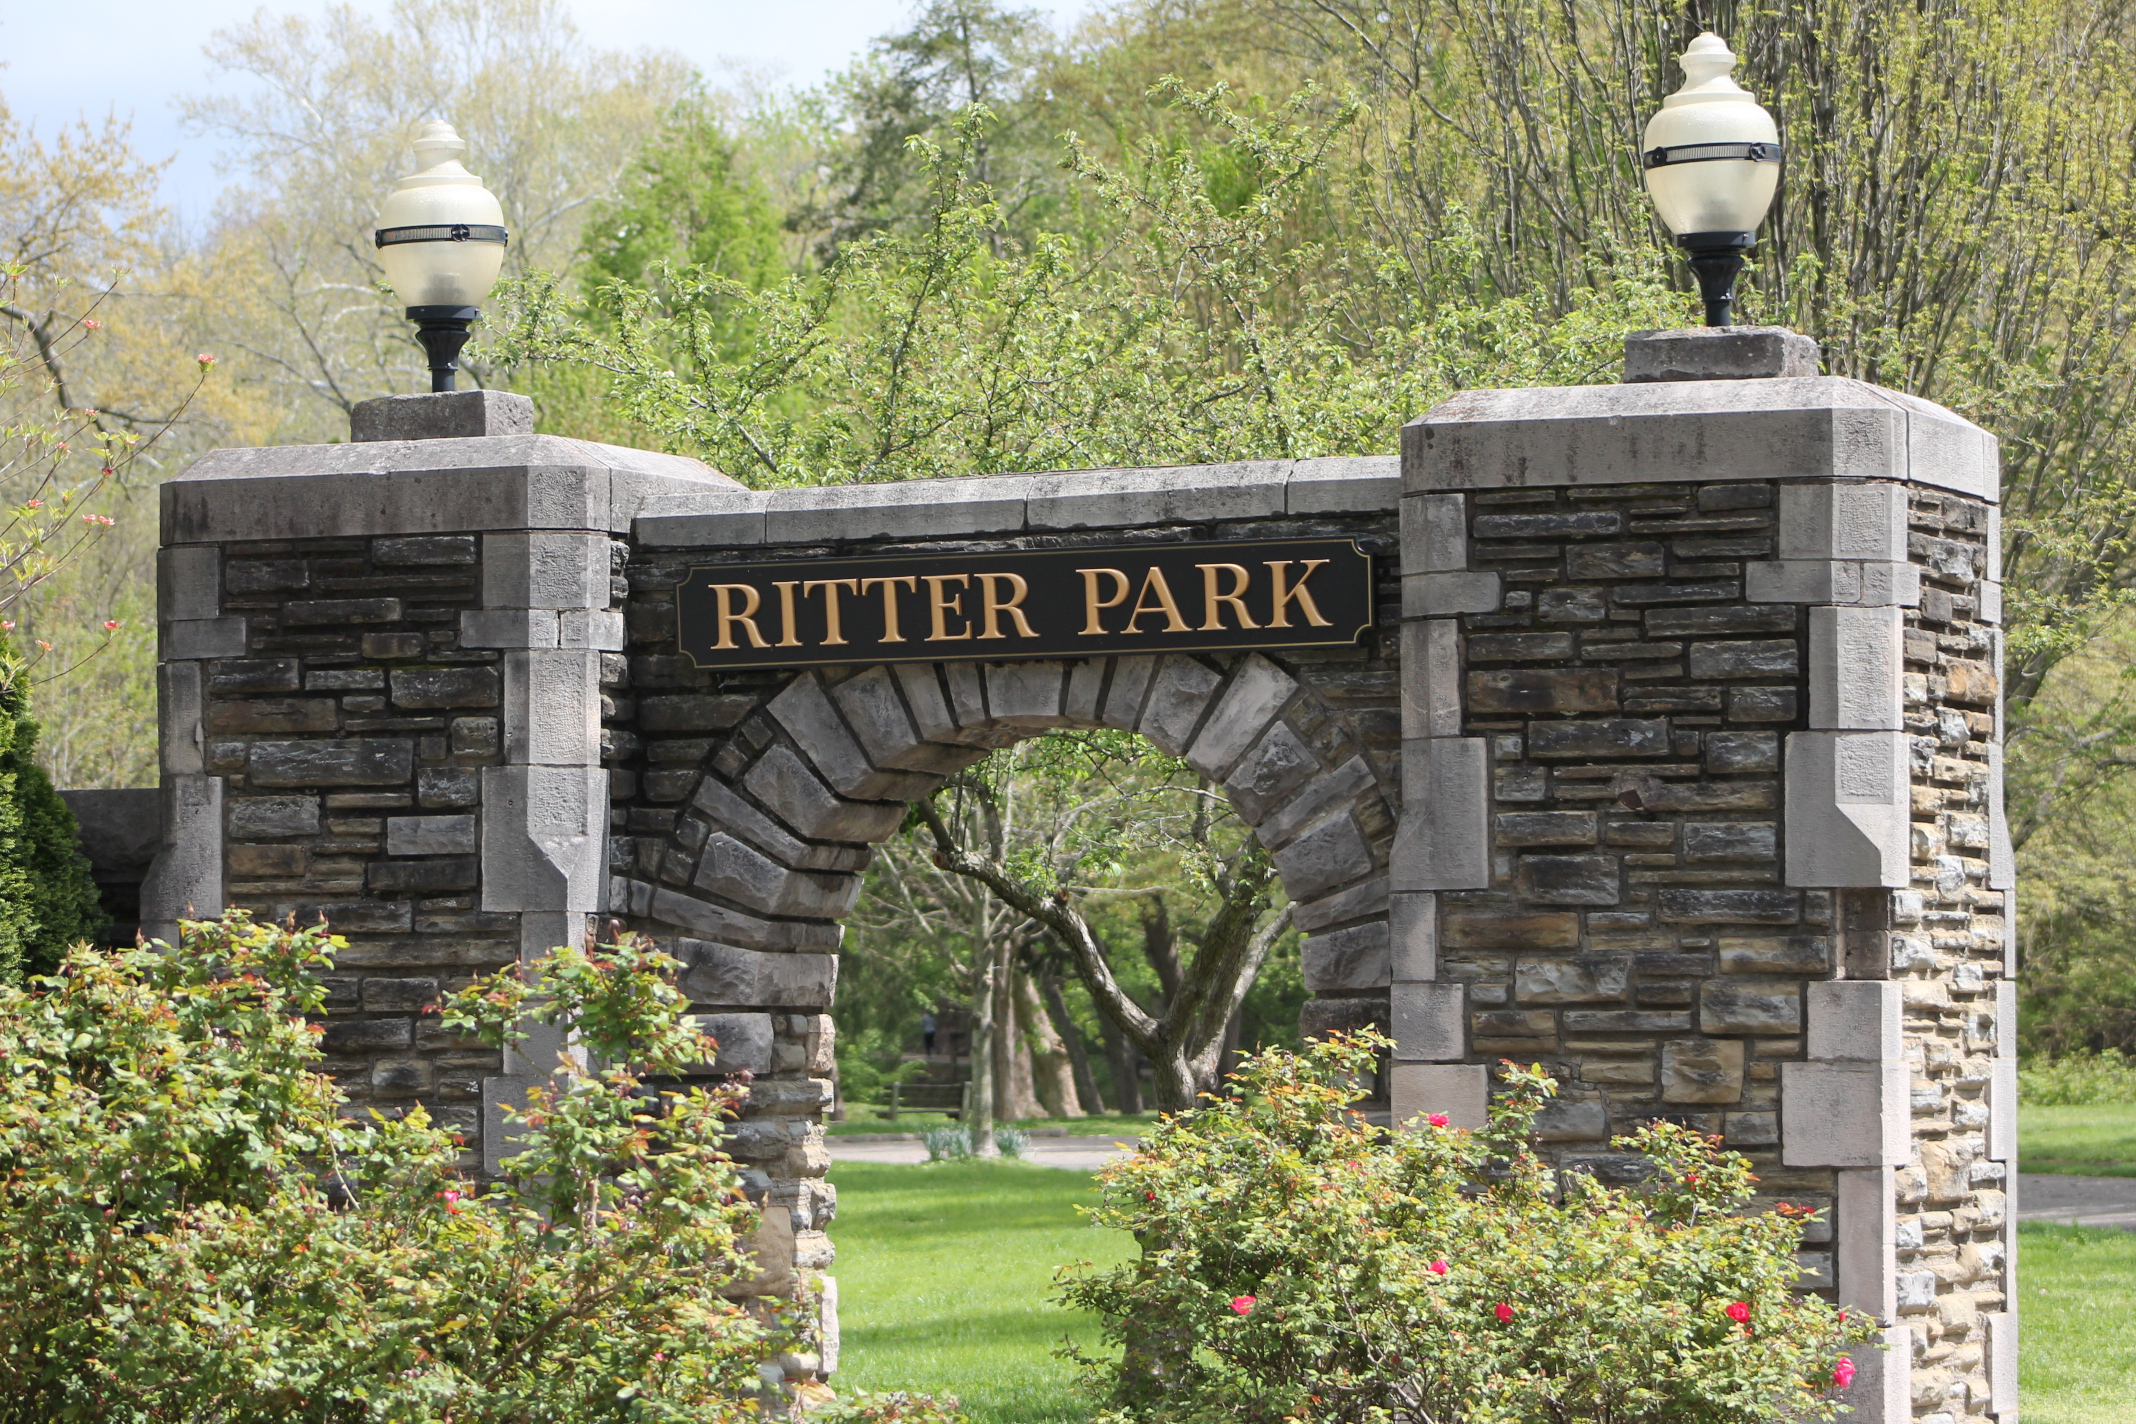 One of the main entrances into Ritter Park is this stone archway, believed to have been built by the WPA in the 1930s.